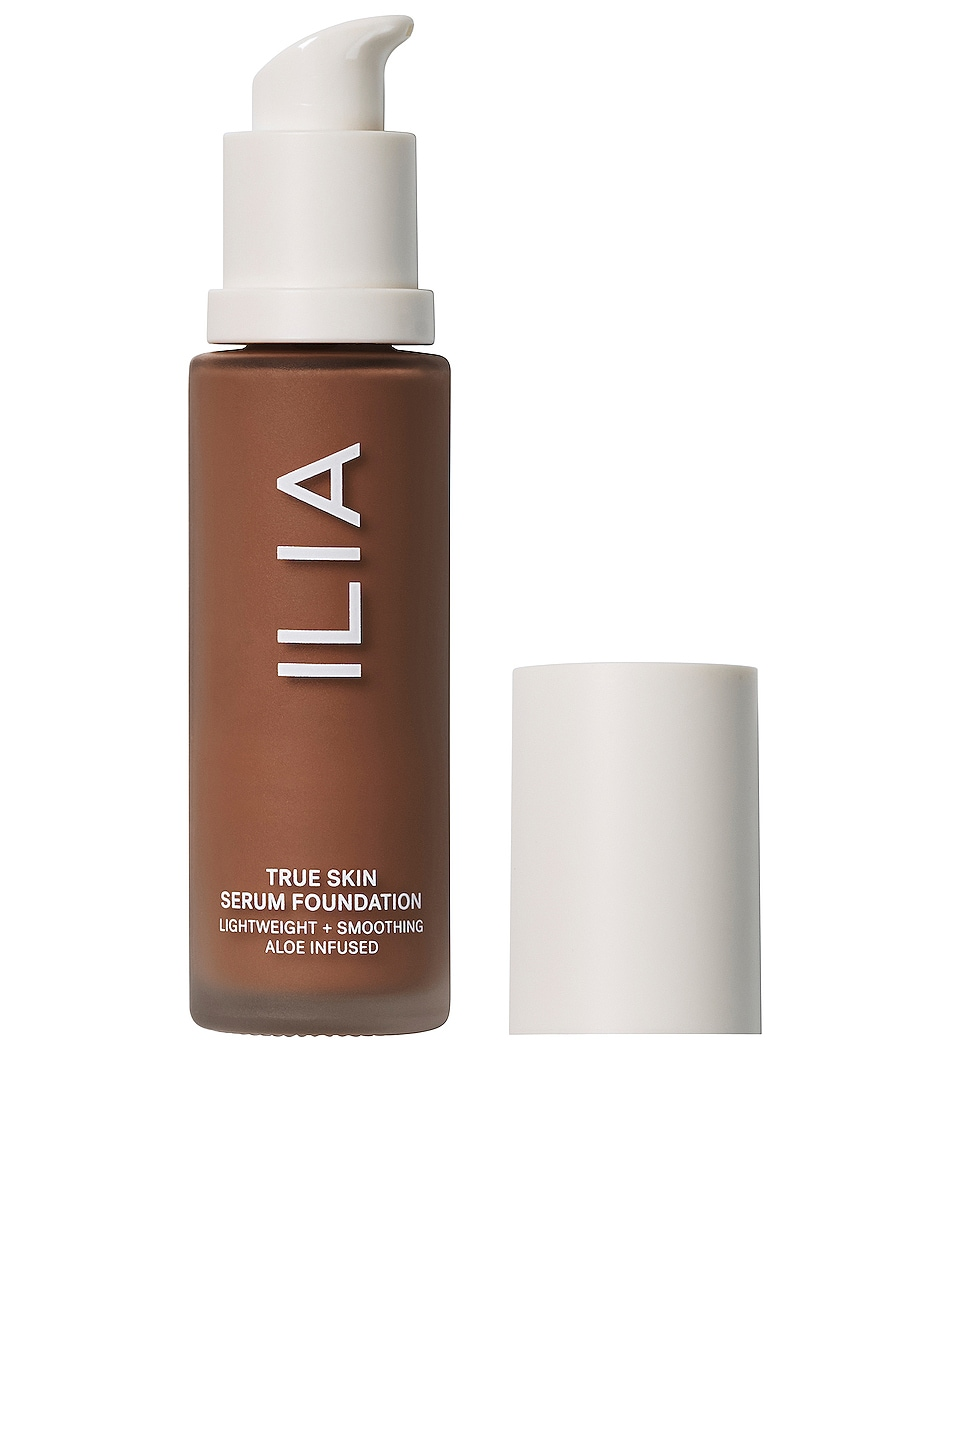 Ilia True Skin Serum Foundation in Macquaire